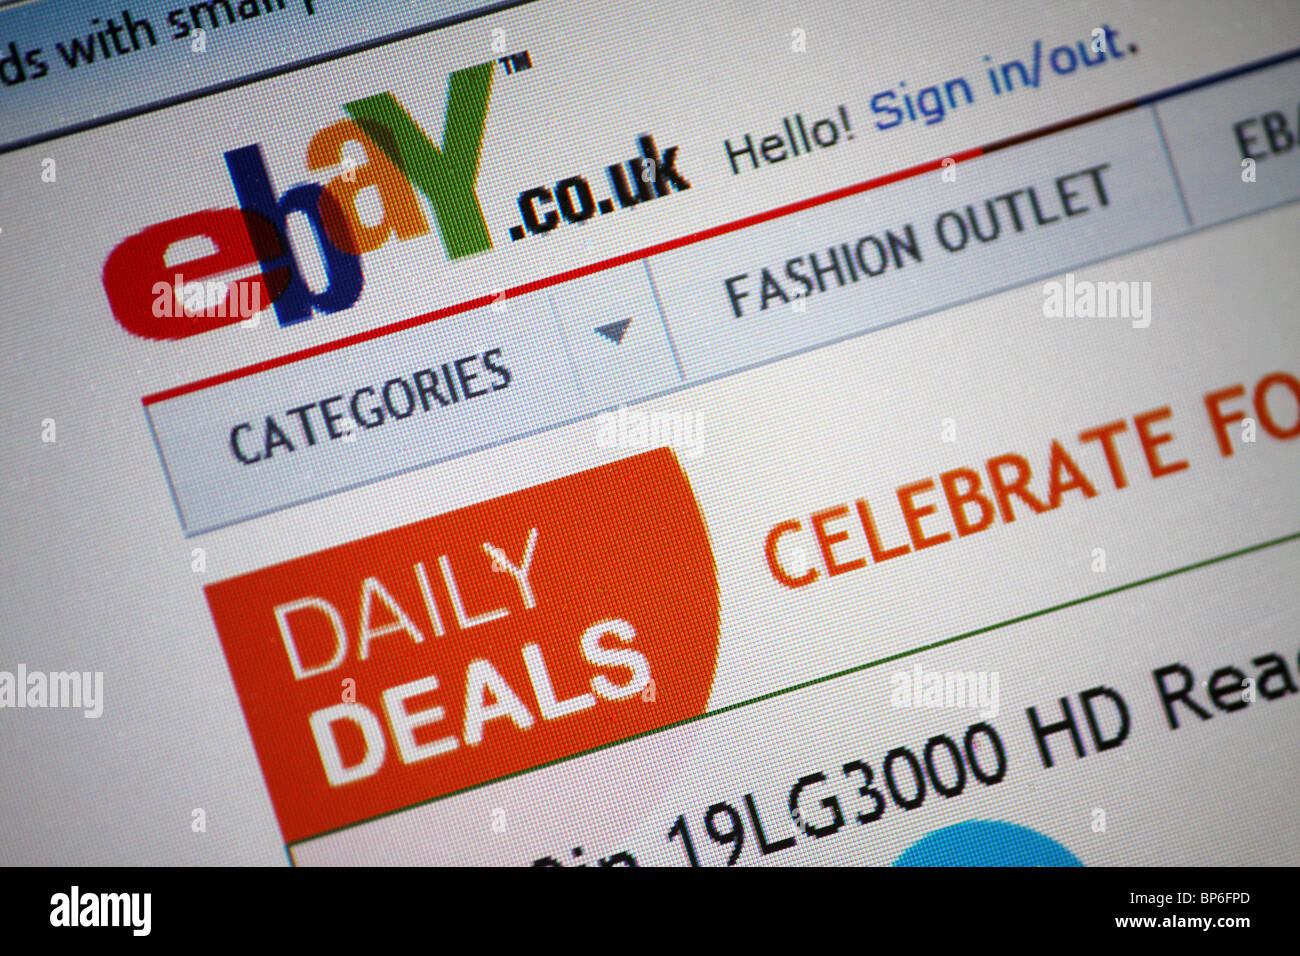 Ebay Co Uk Website Screen Photograph Of The Auction Shopping Site On Stock Photo Alamy